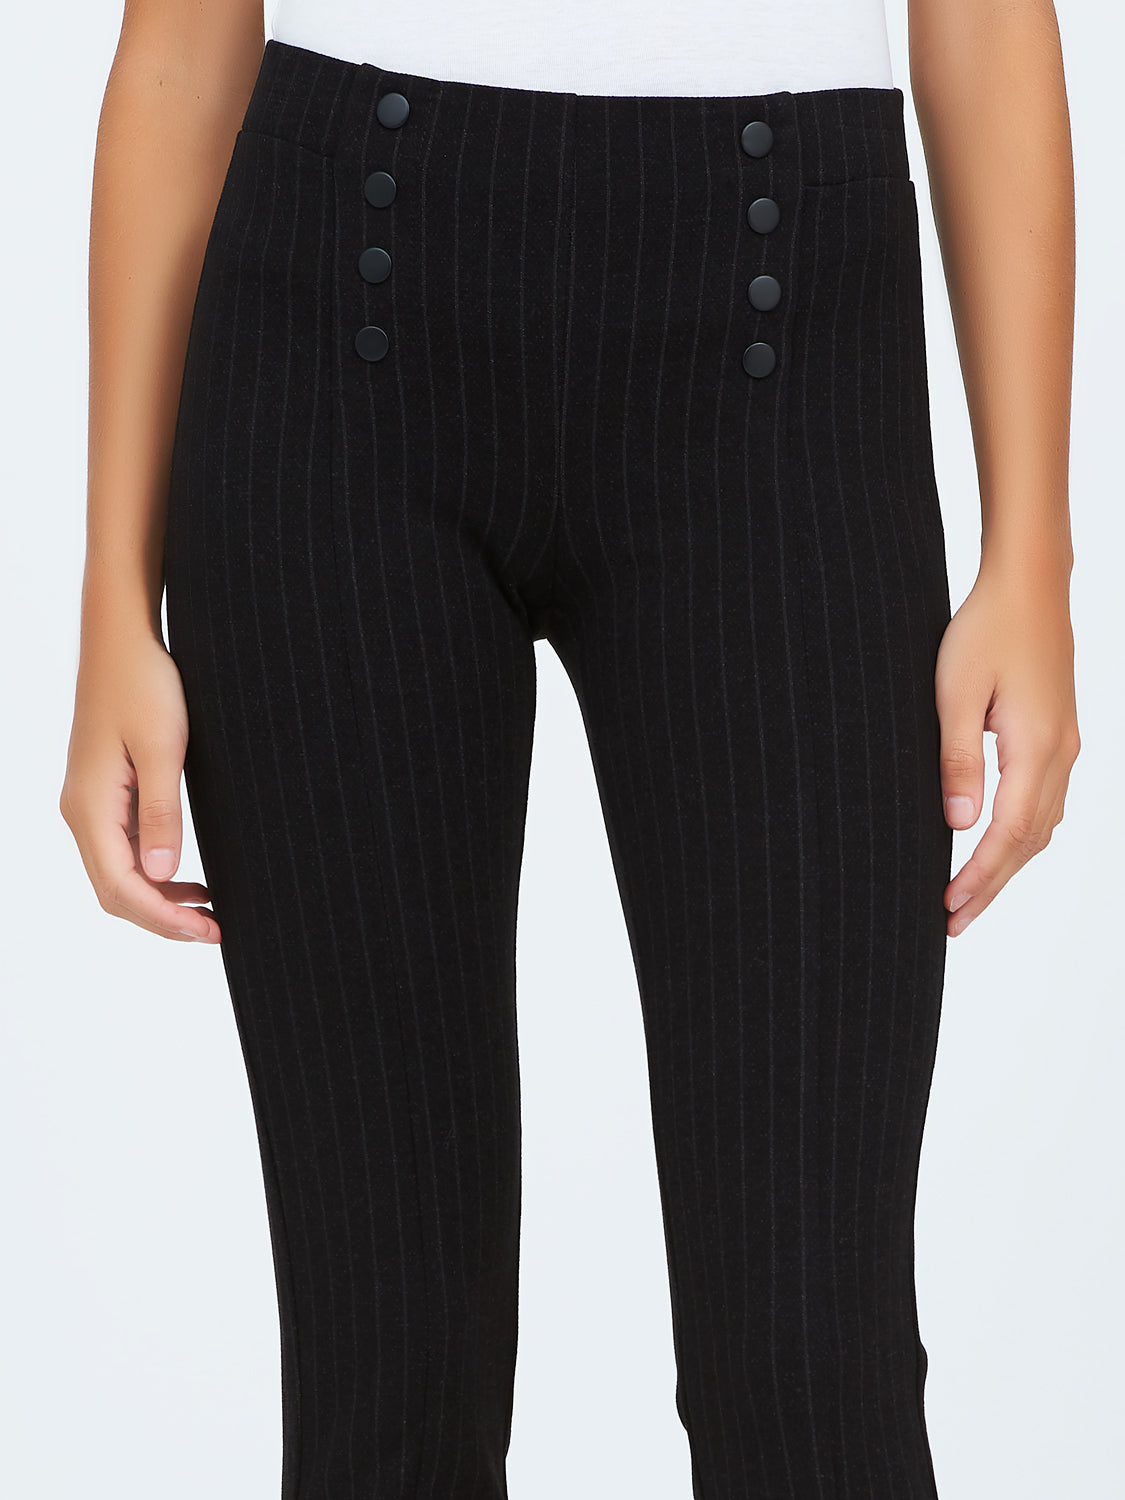 Striped Knit Pants With Decorative Buttons